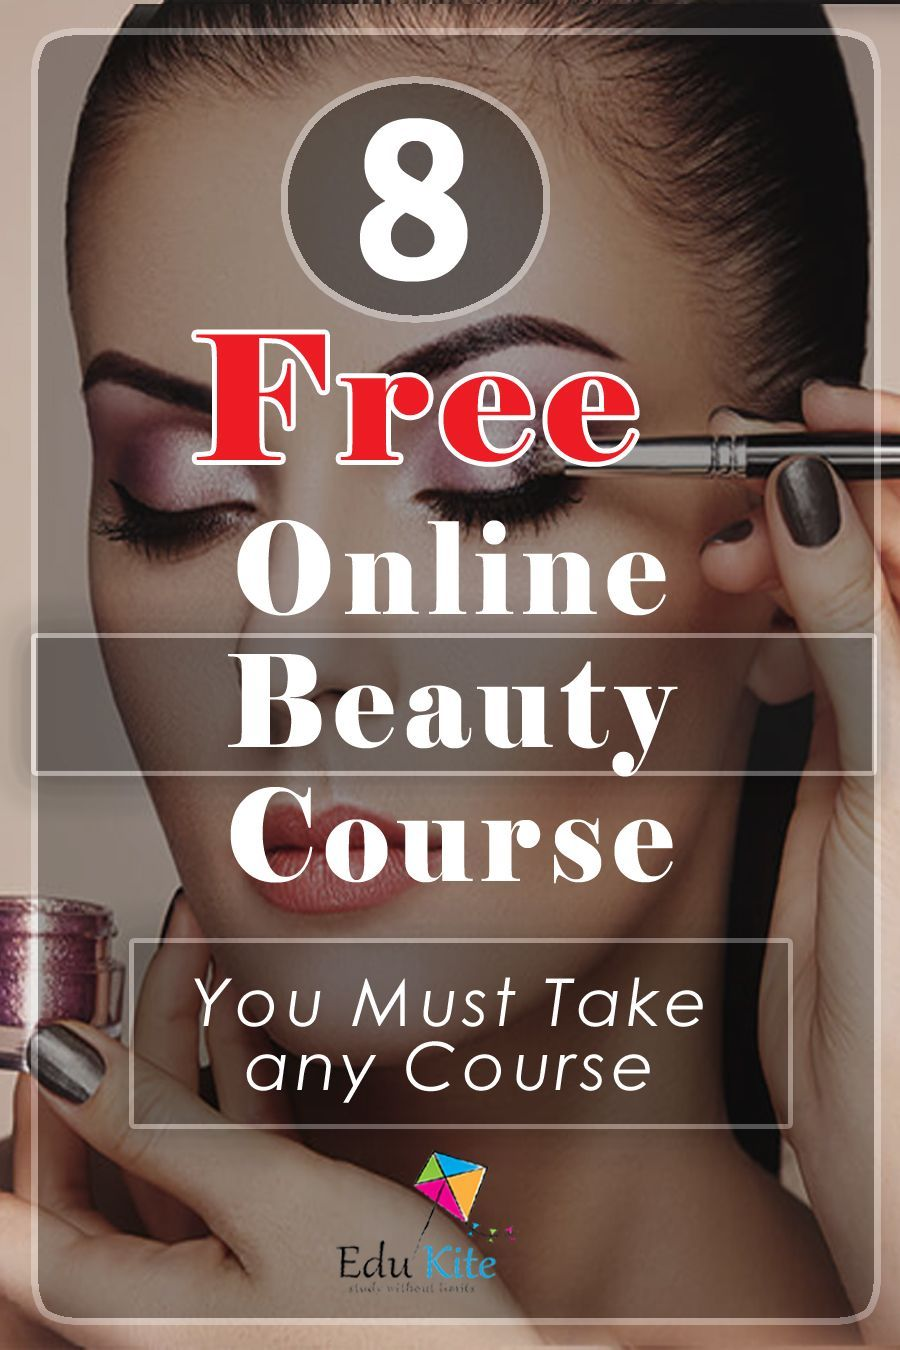 8 Free Online Beauty And Makeup Courses Makeup Courses Makeup Courses Online Makeup Artist C In 2020 Free Online Makeup Courses Makeup Course Makeup Artist Course